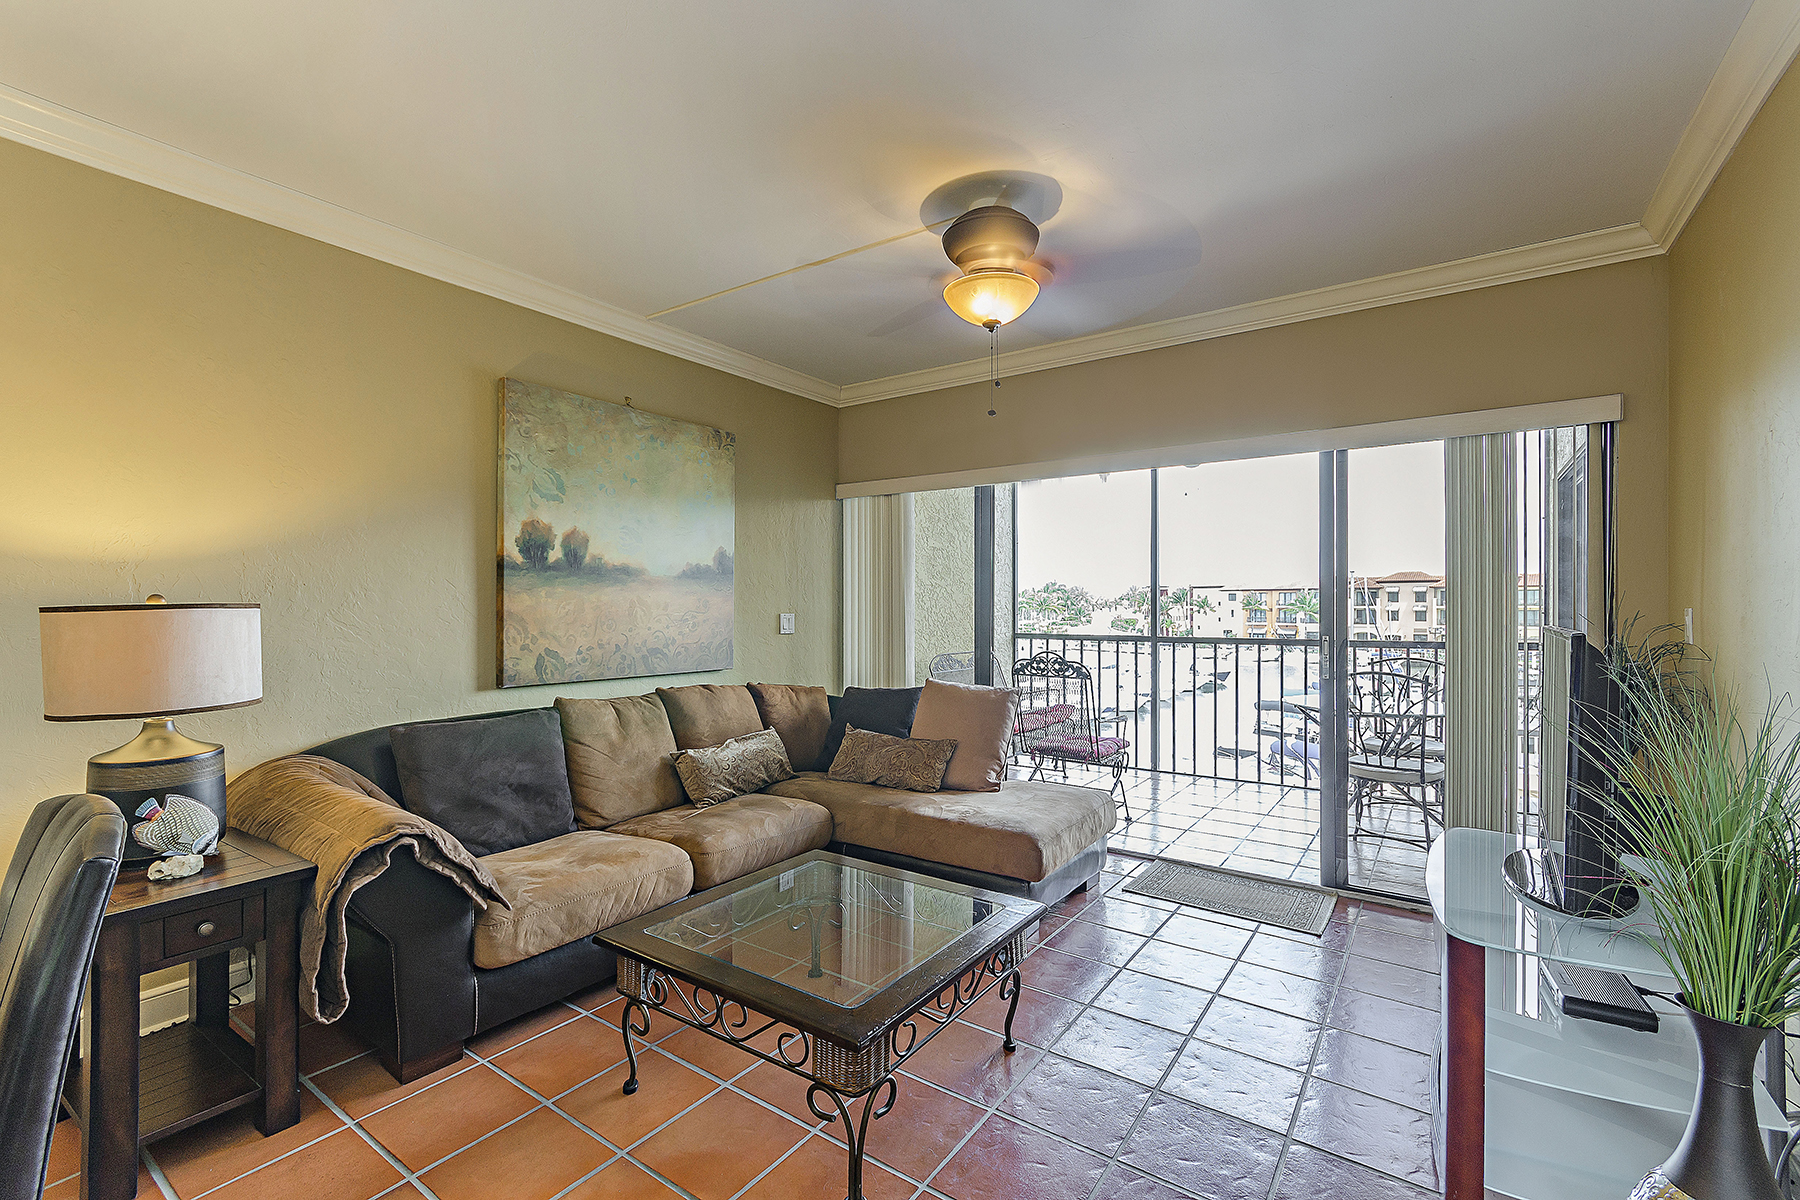 Condominium for Sale at 801 River Point Dr , A-205, Naples, FL 34102 801 River Point Dr A-205 Naples, Florida, 34102 United States